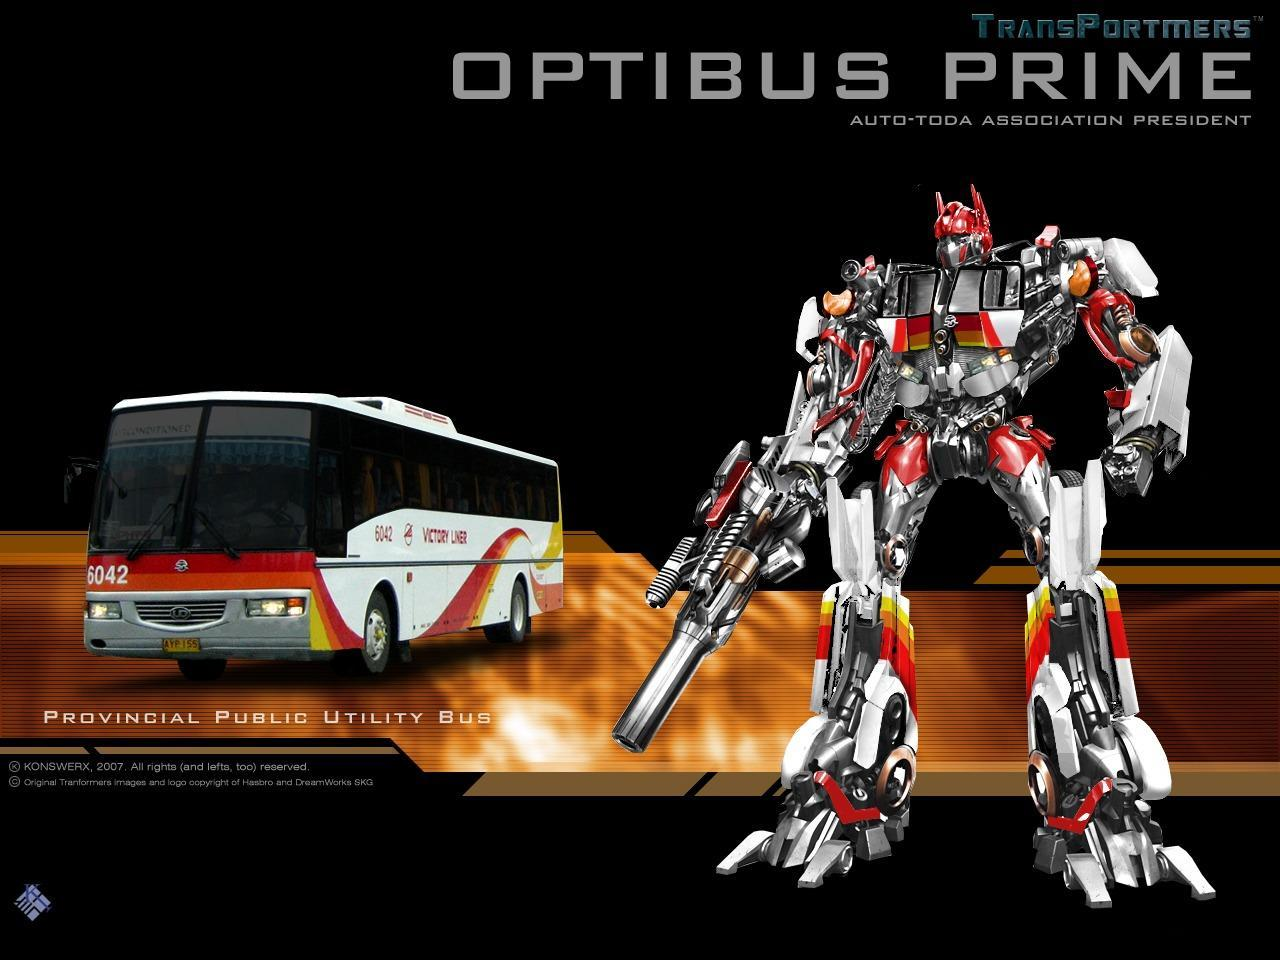 pictures transformers 1 transformers - movies movies